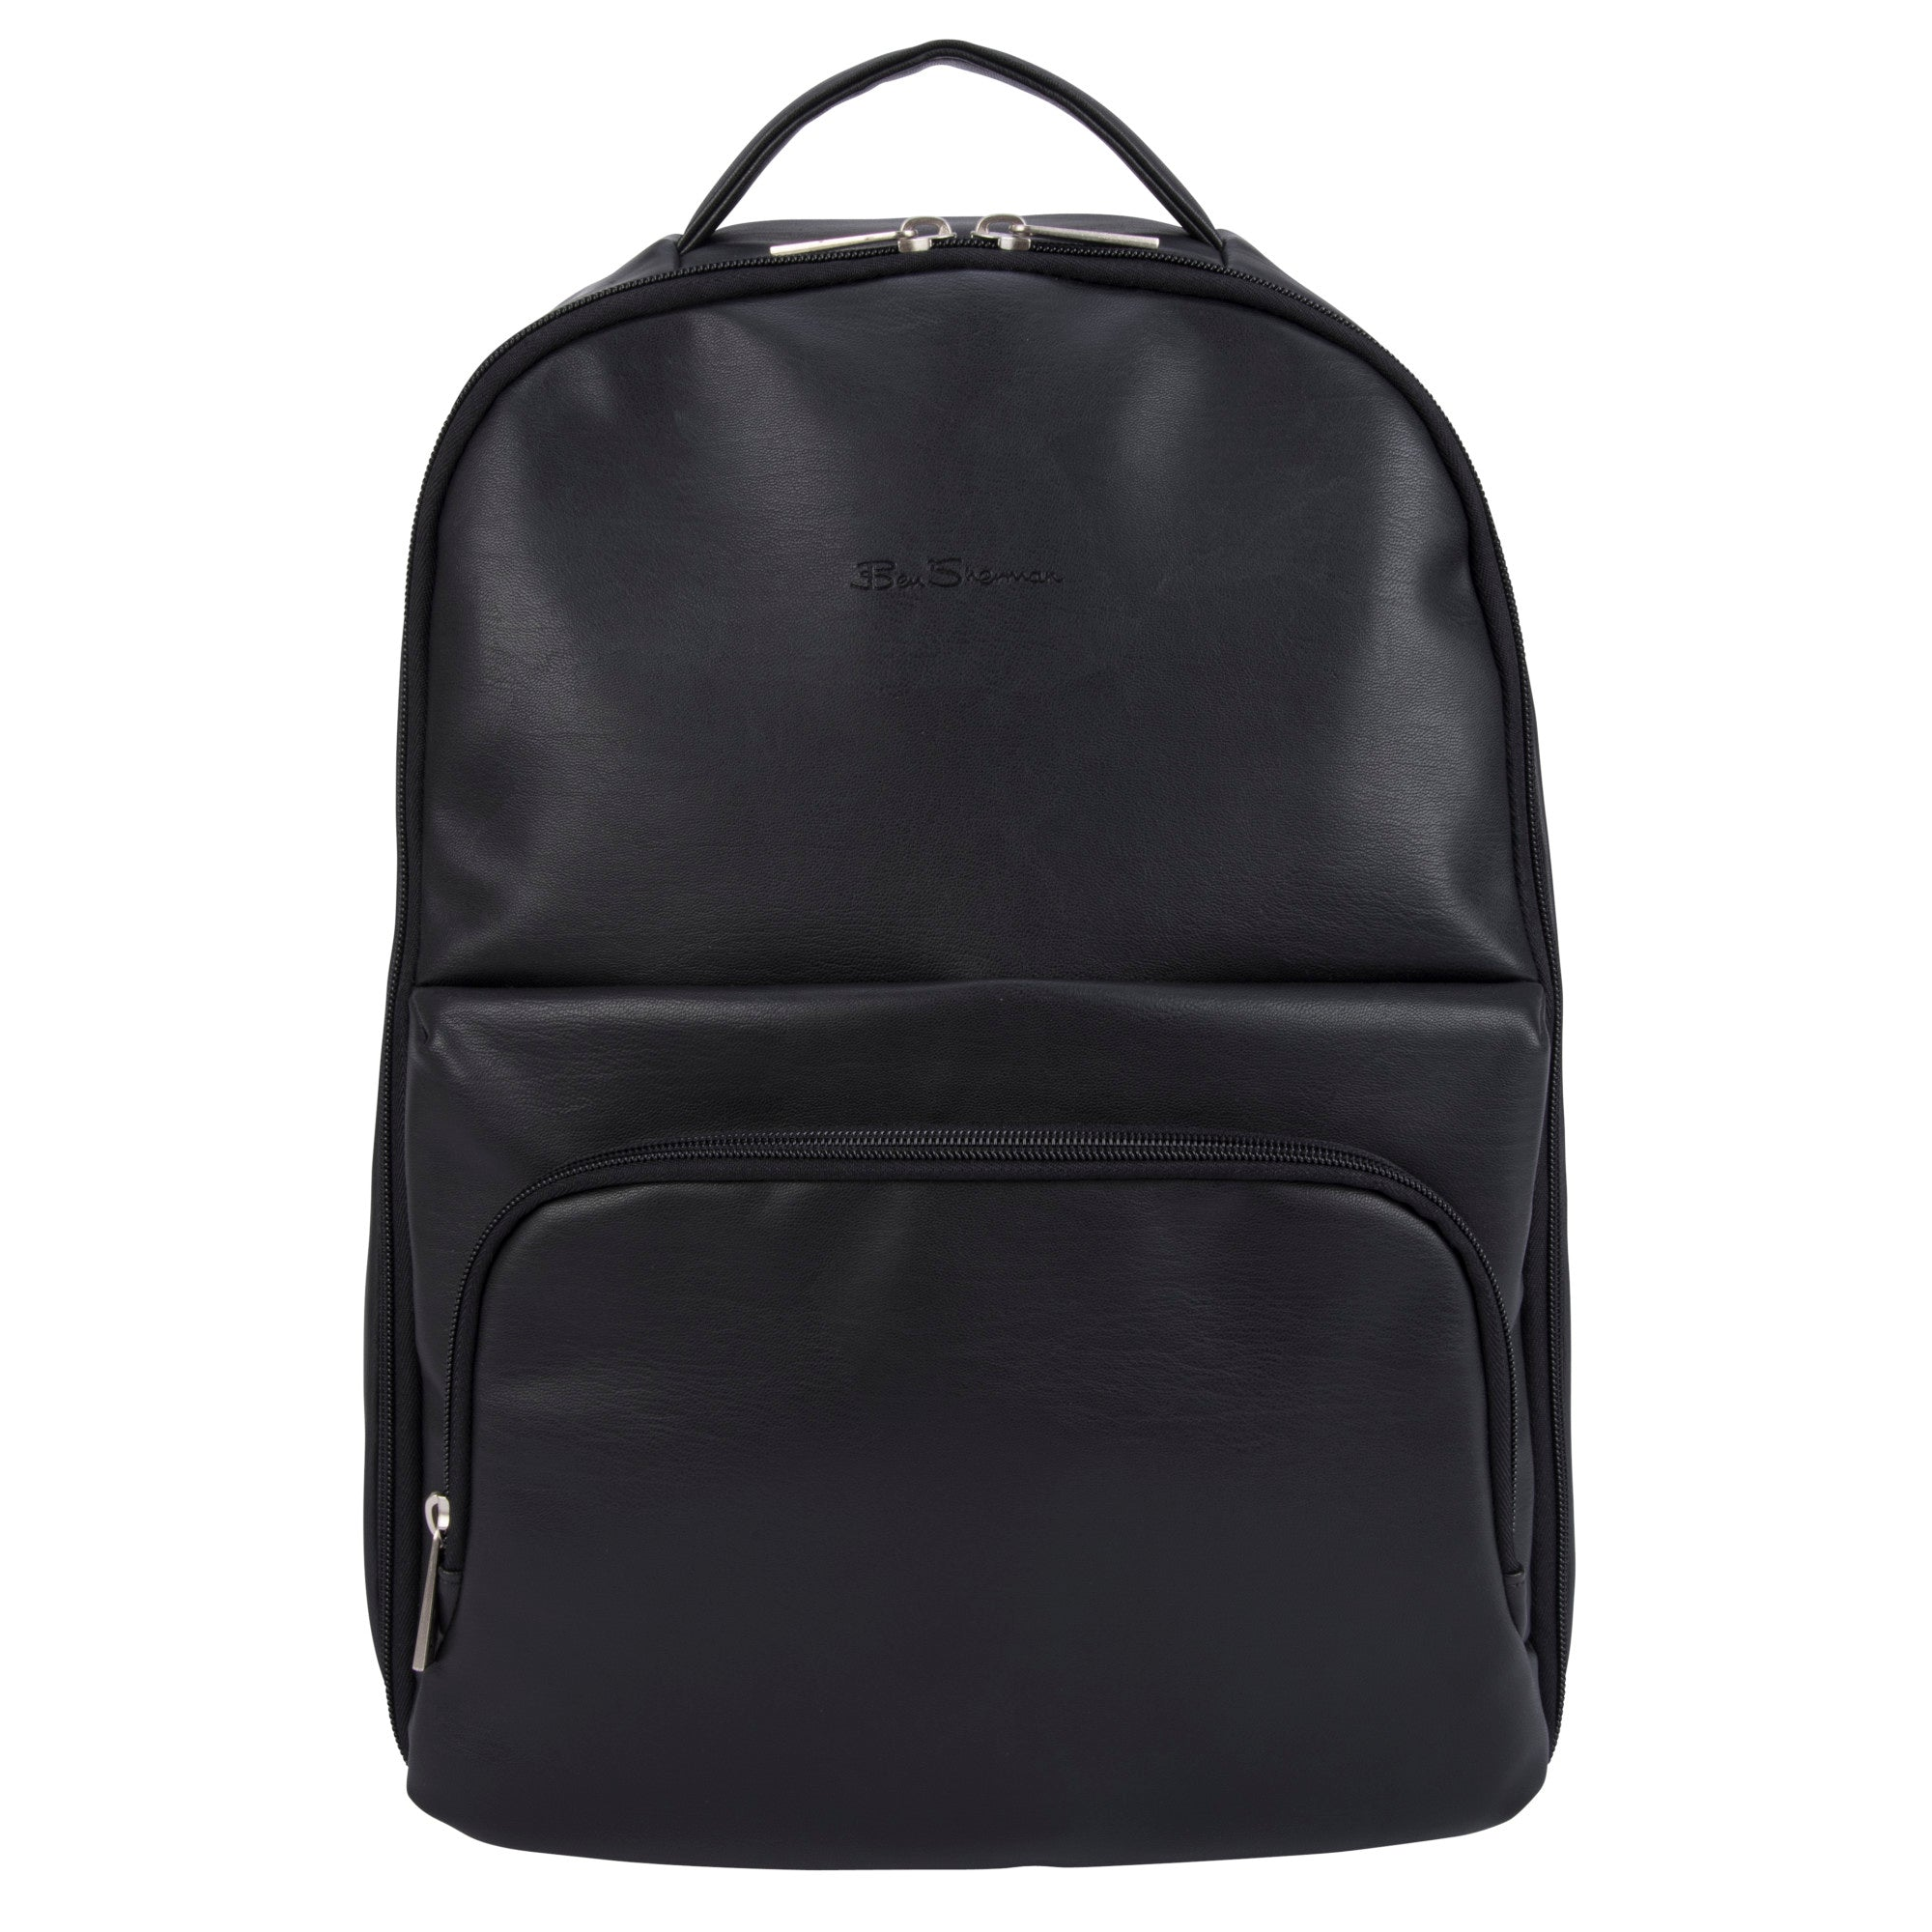 "Ben Sherman Faux Leather Single Compartment Top Zip 15.6"" Computer Backpack - BS17010502"